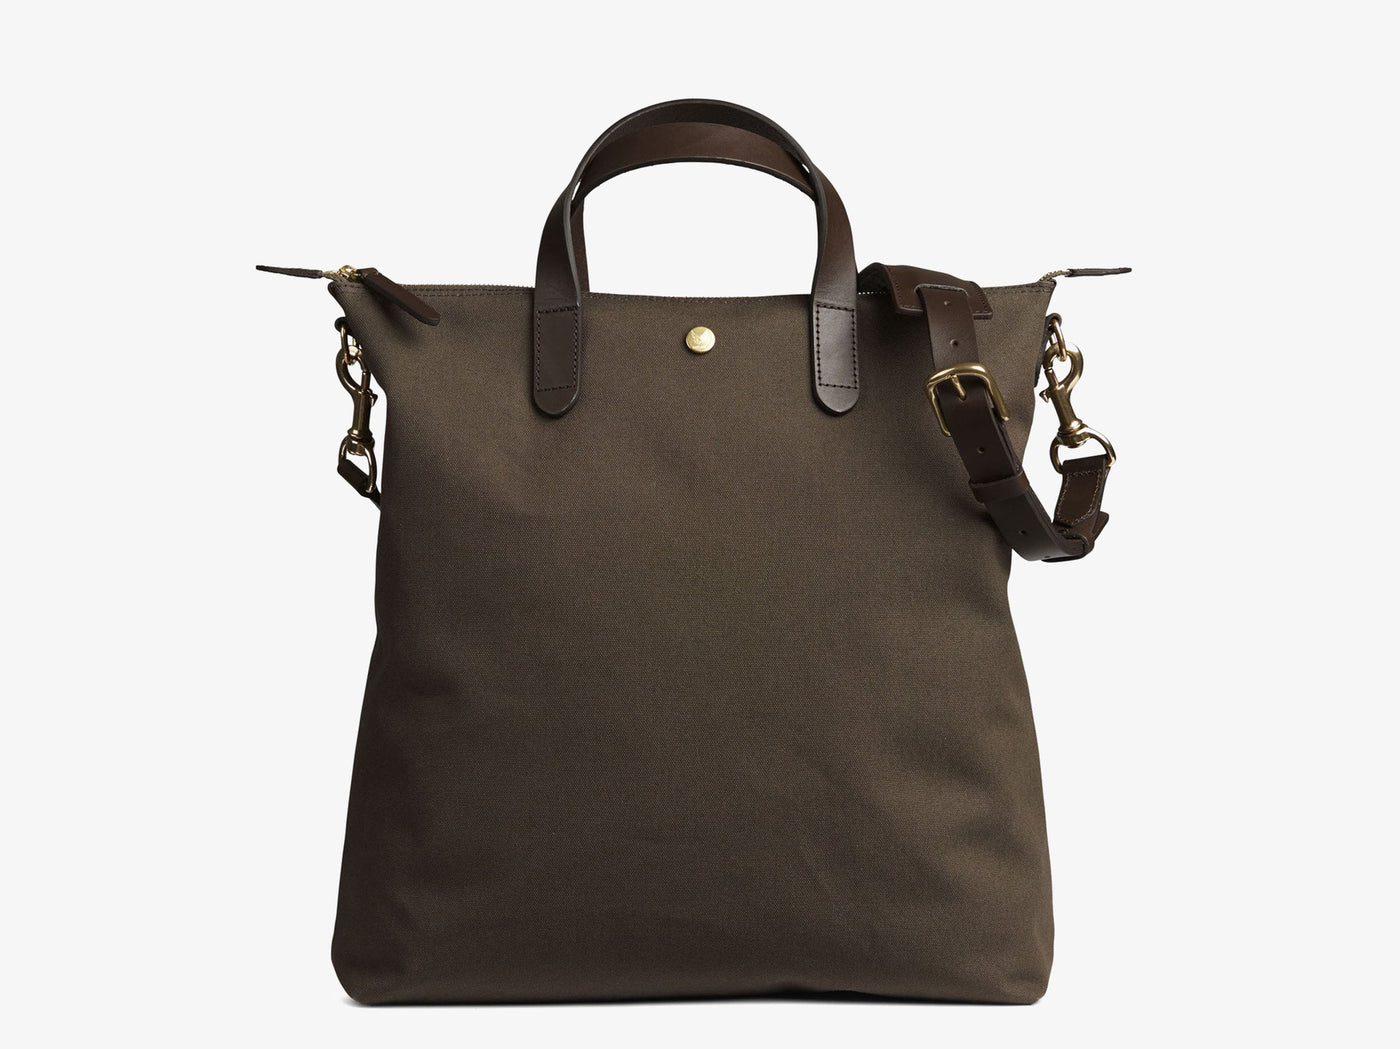 M/S Shopper – Army/Dark Brown -  Tote bag - Mismo